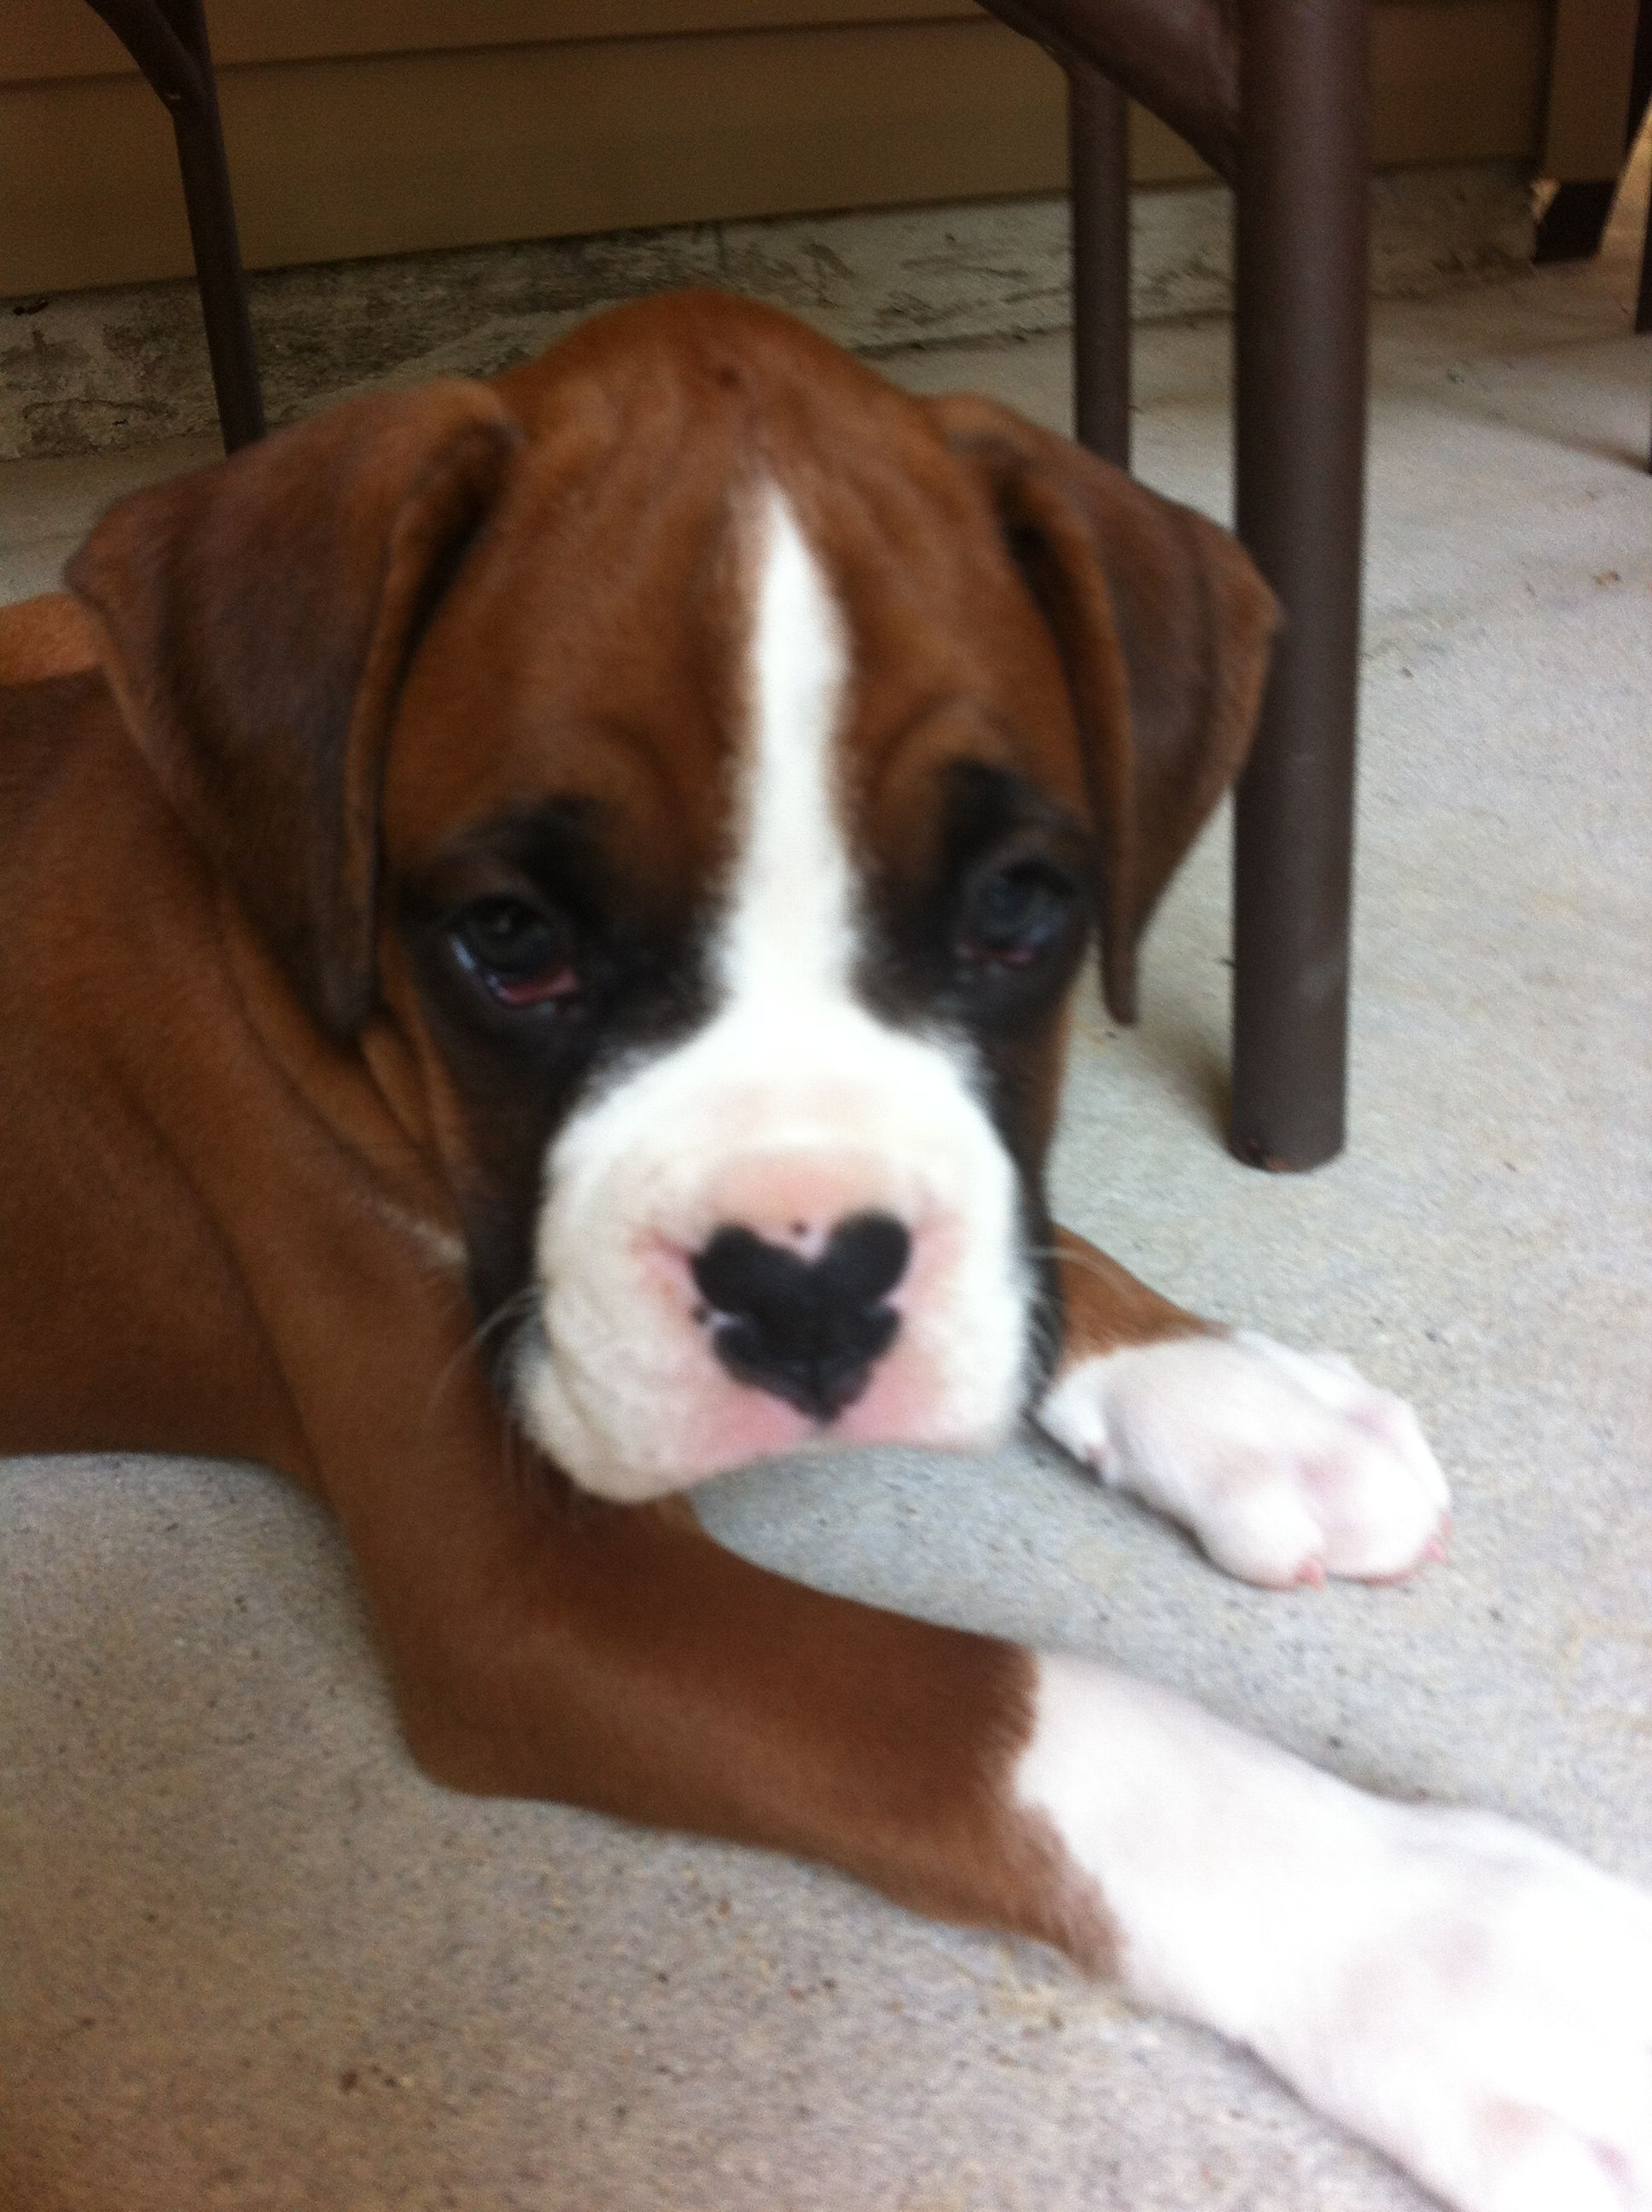 Boxer Puppy With Heart Nose Boxer Puppies Boxer Dogs Dog Nose